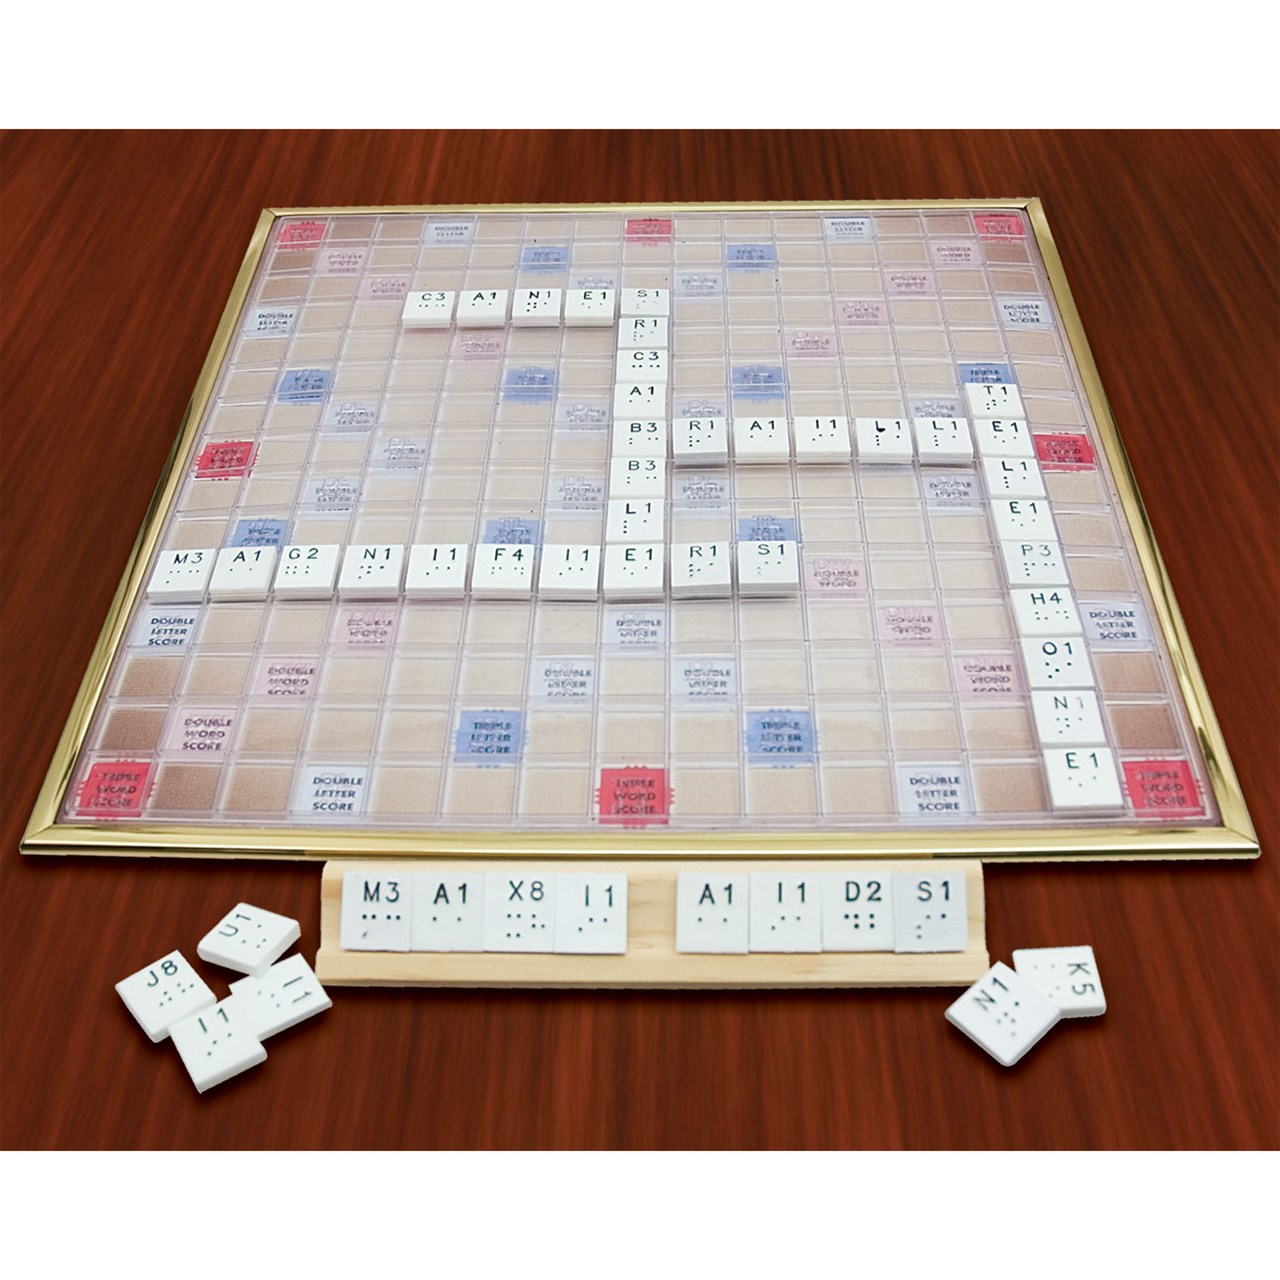 Maxiaids Deluxe Scrabble Game Braille Version